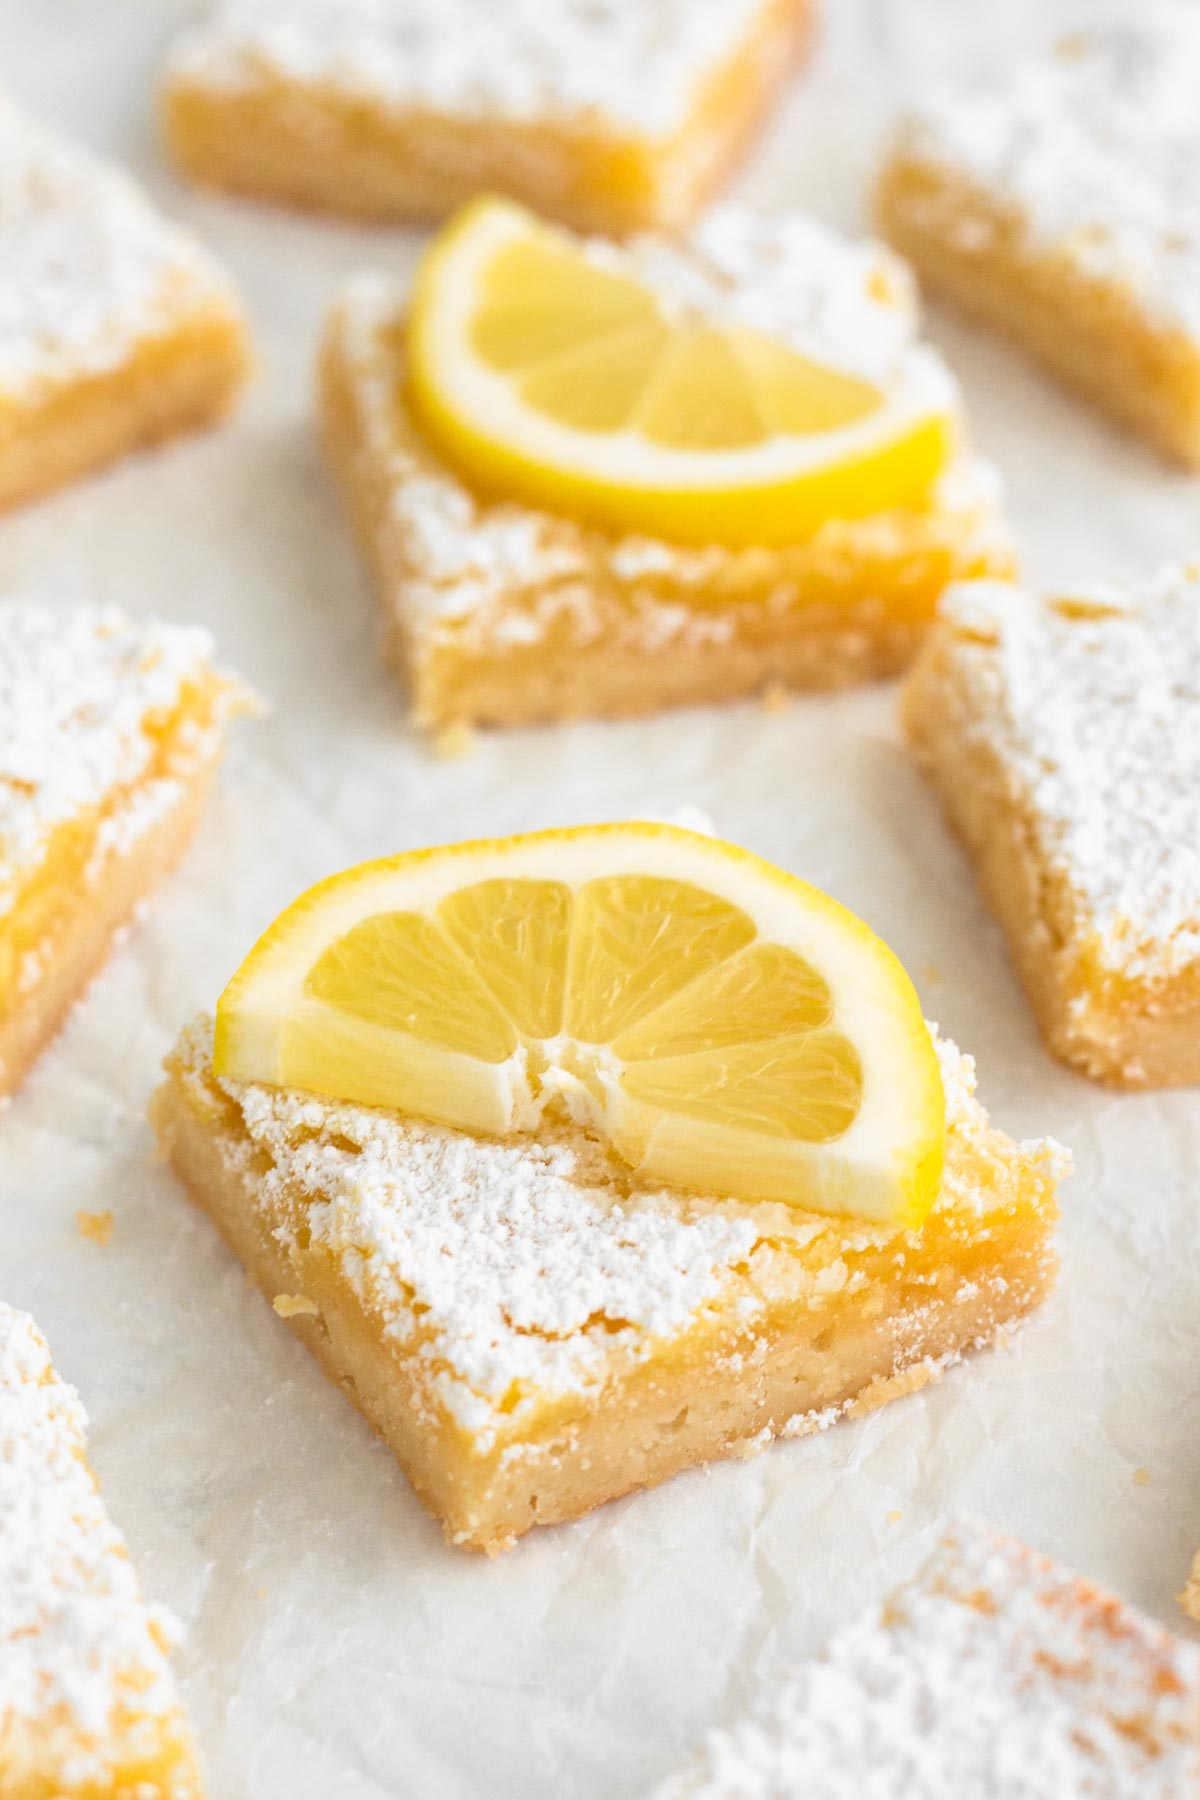 angled view of lemon bars and lemon slices scattered on parchment paper